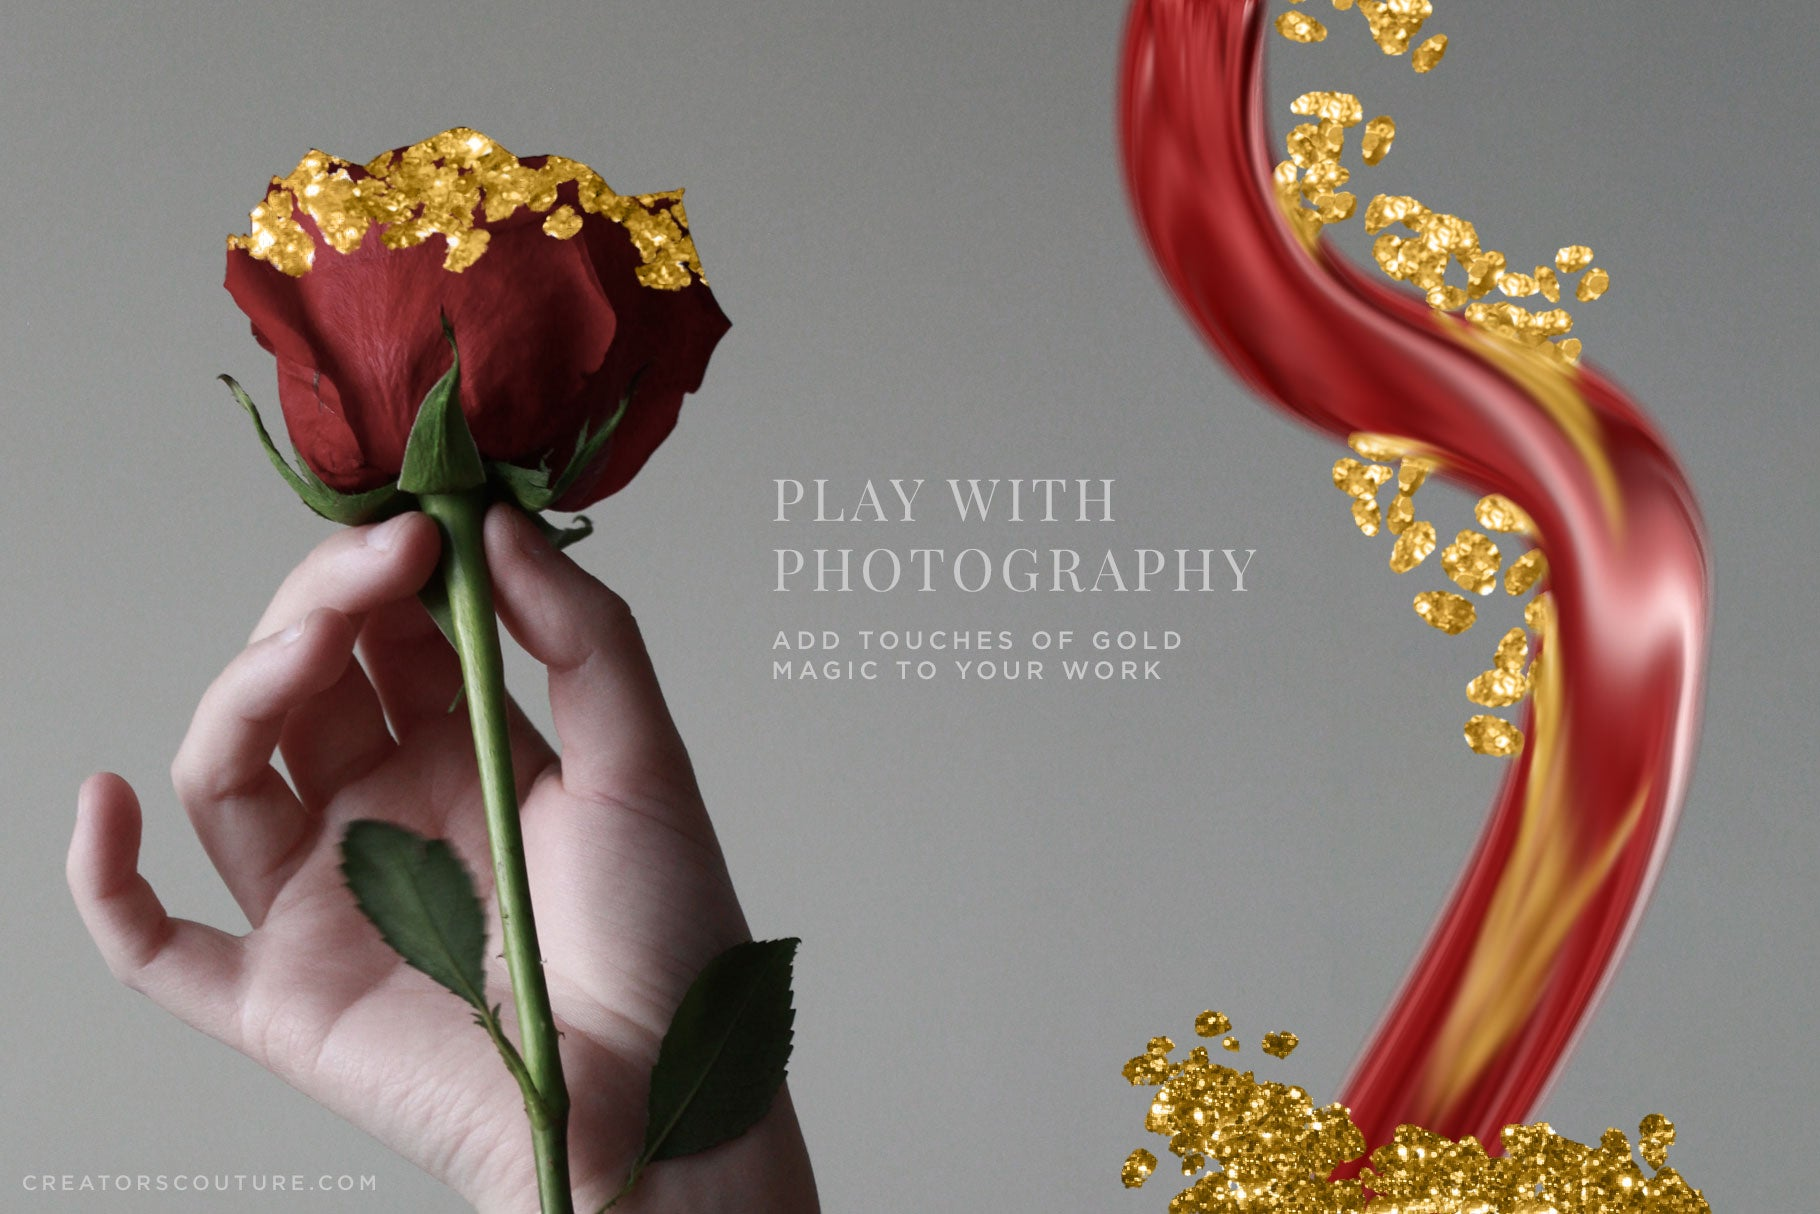 add gold touches to your photography with gold photoshop brushes